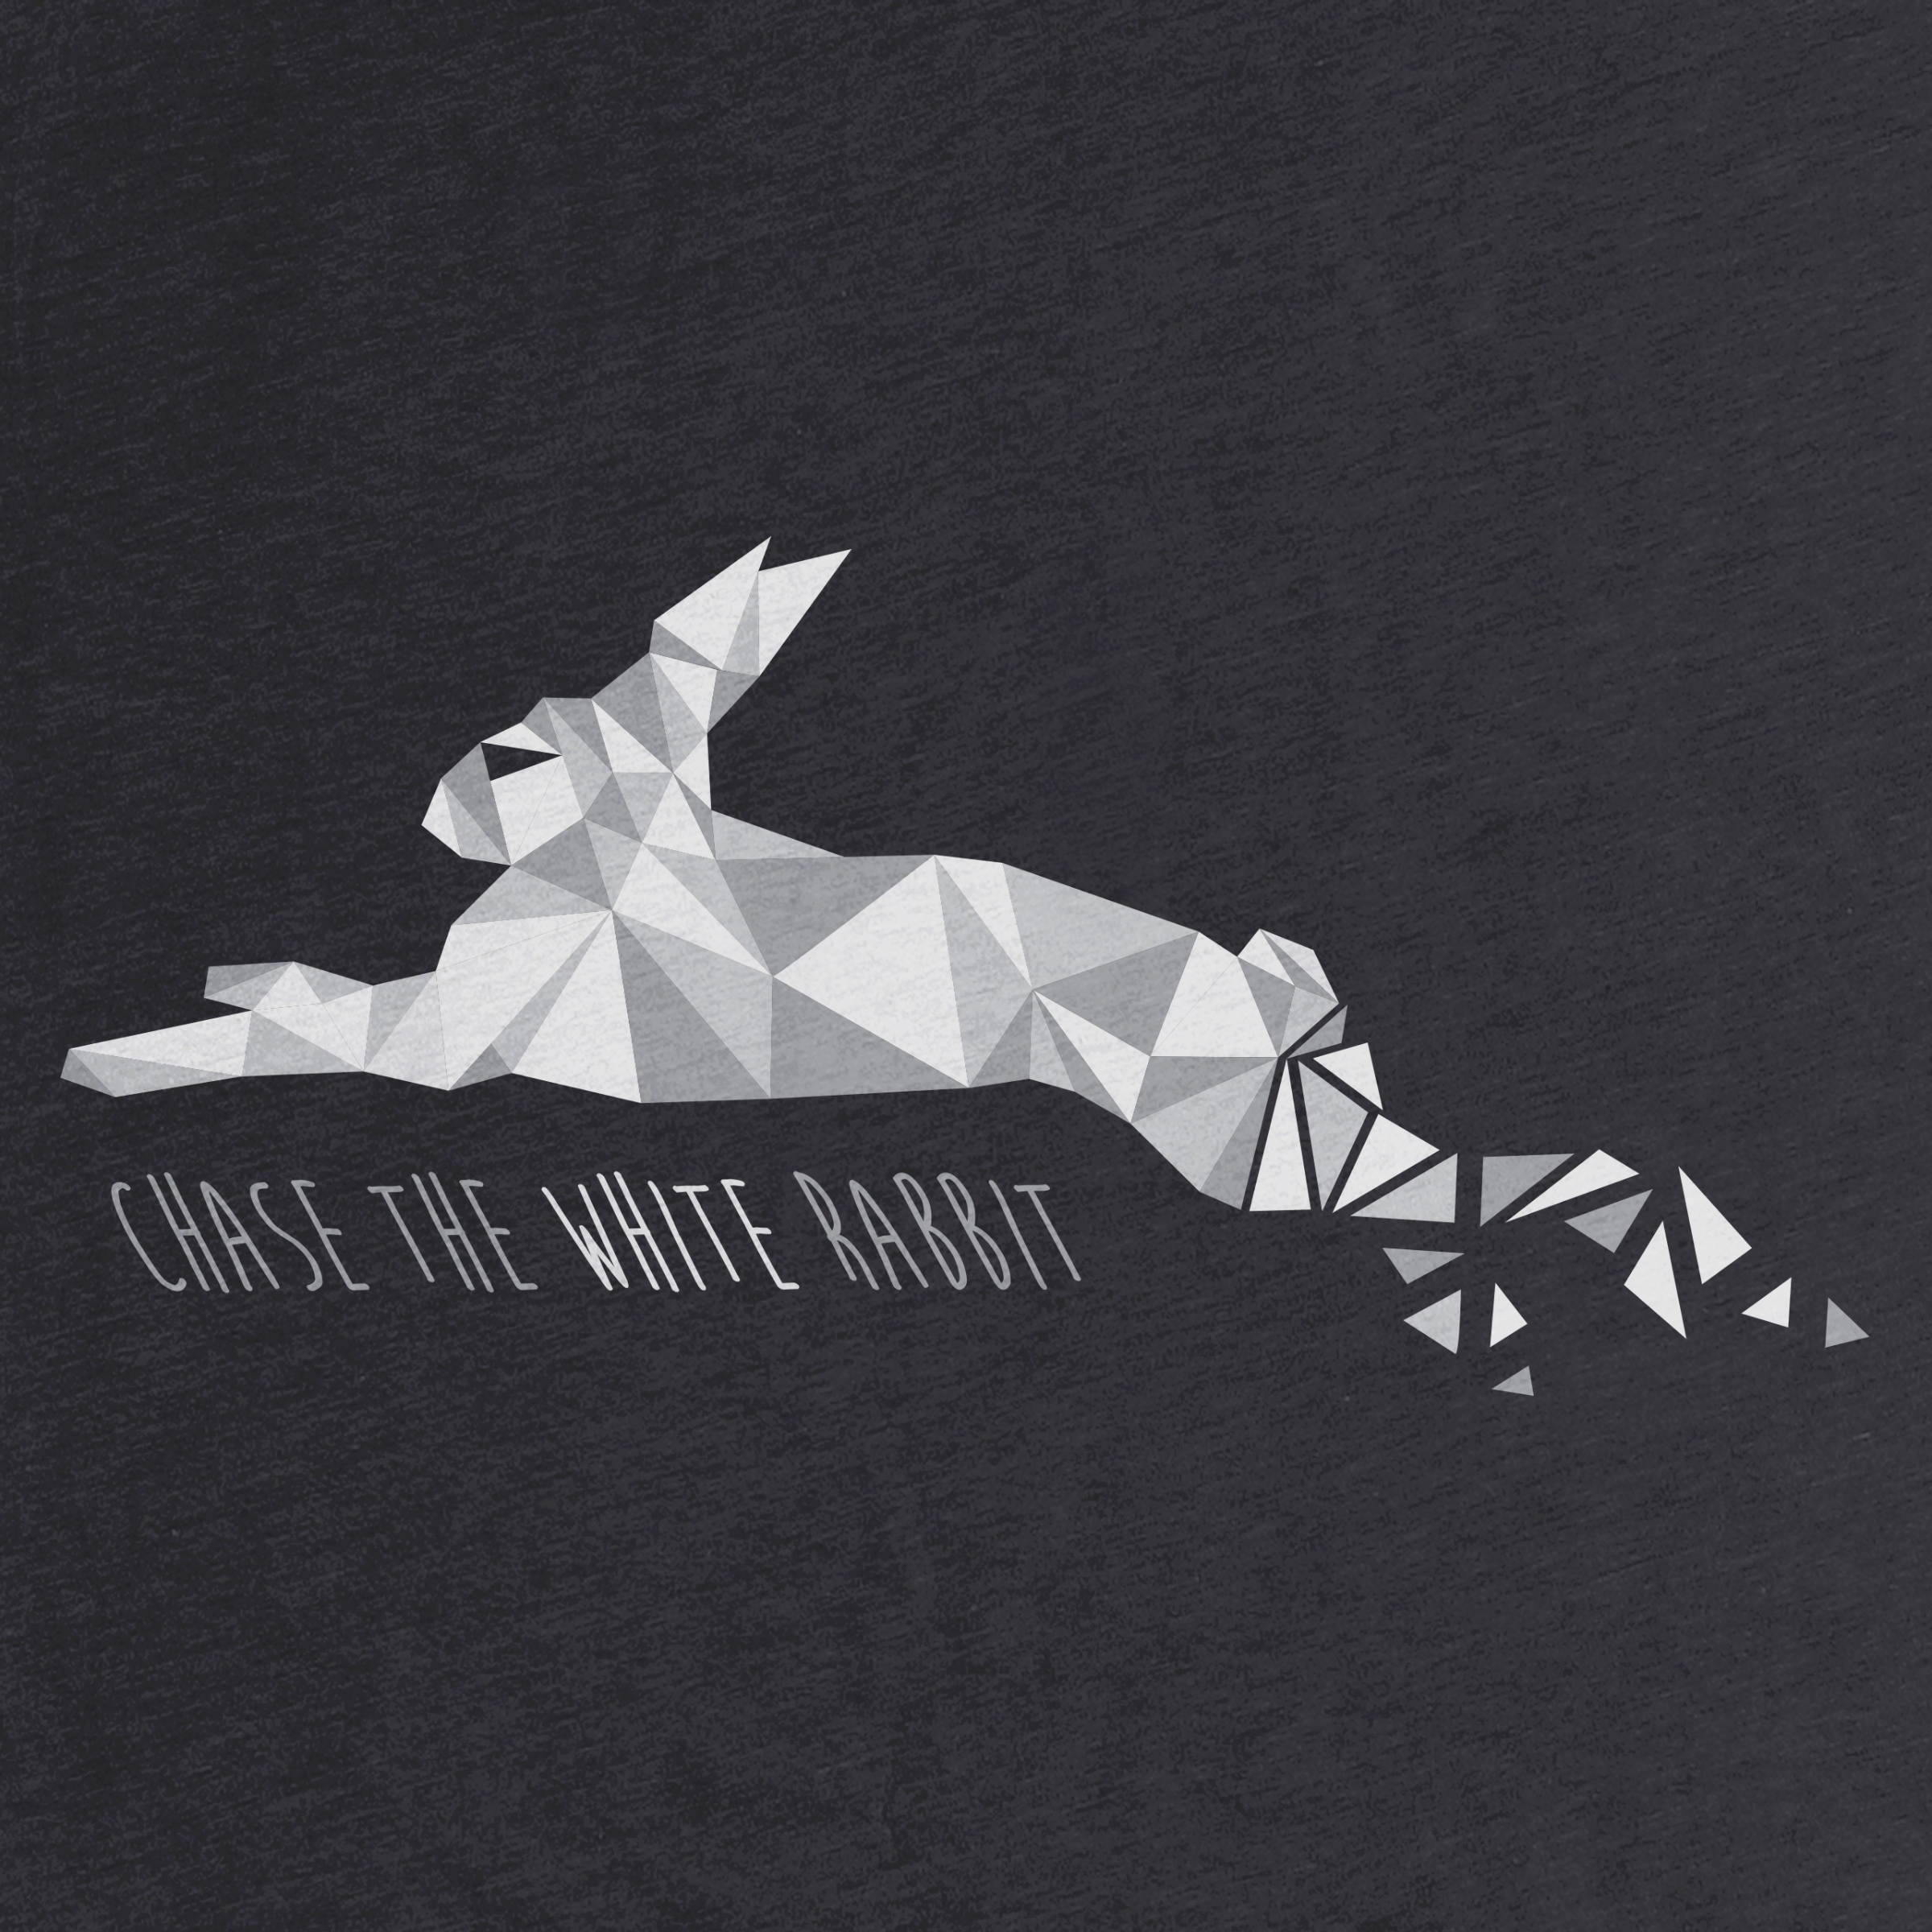 Chase the White Rabbit